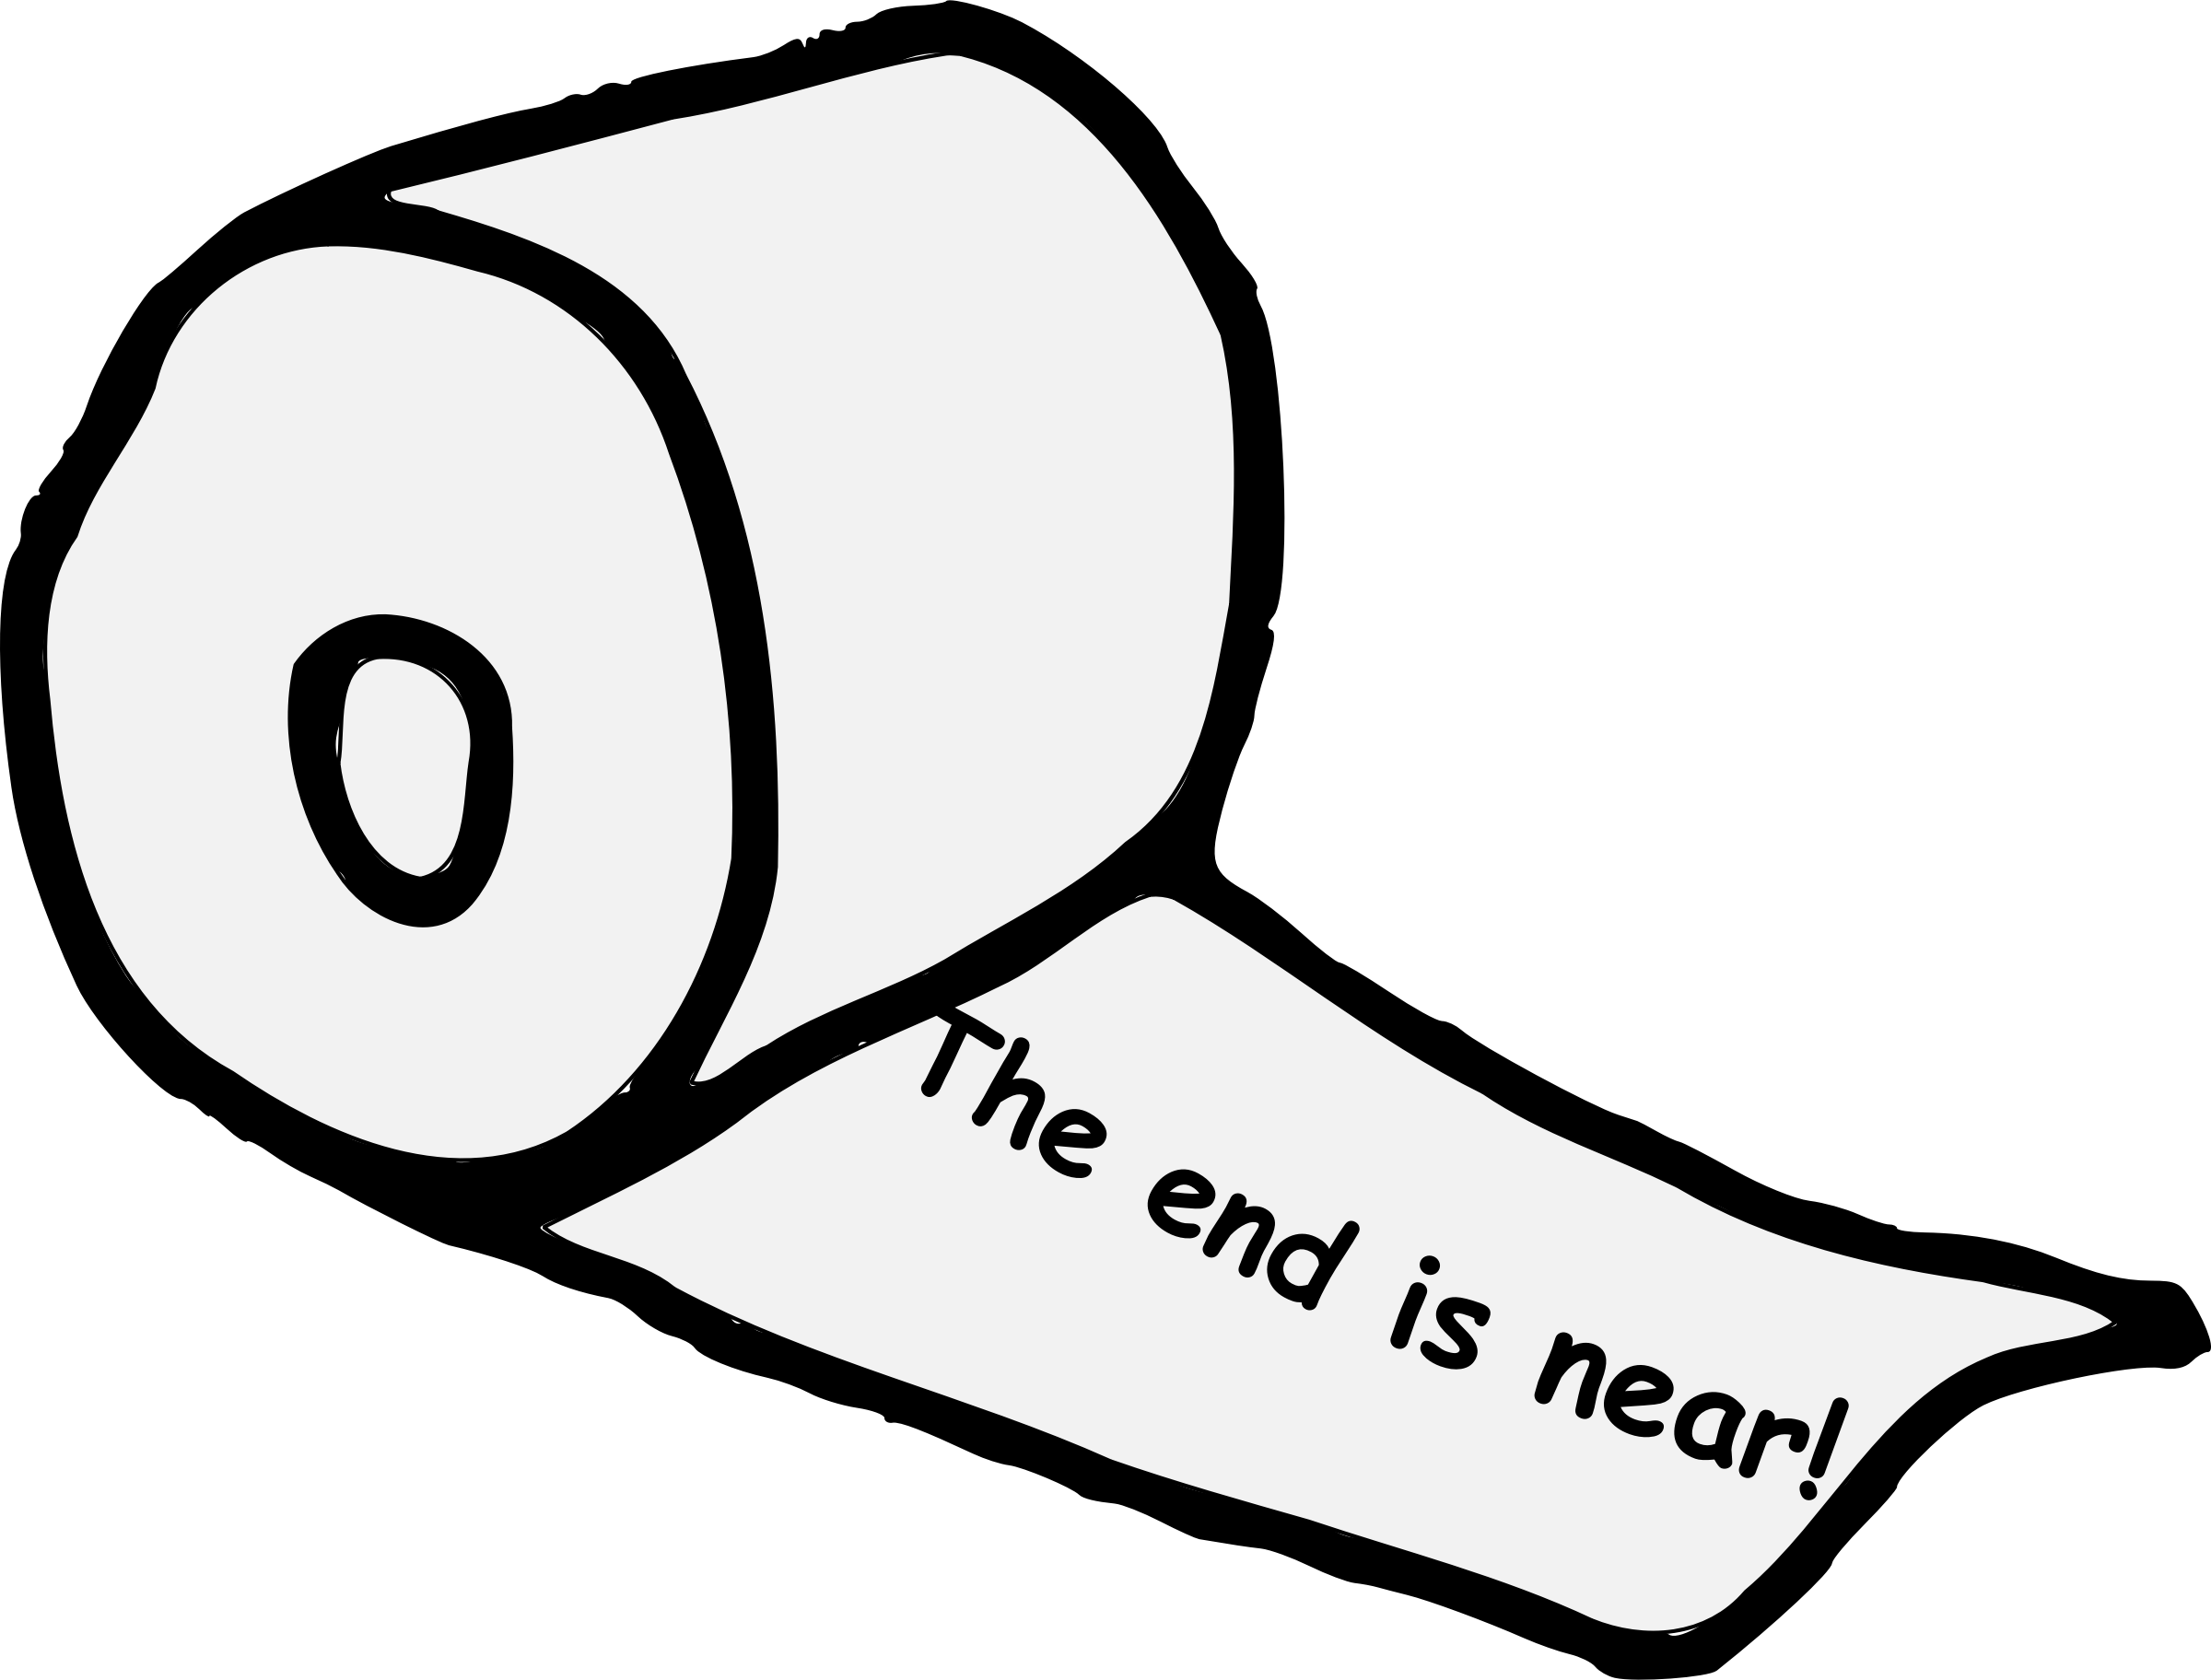 This free Icons Png design of The End Is Near! - The End Is Near PNG